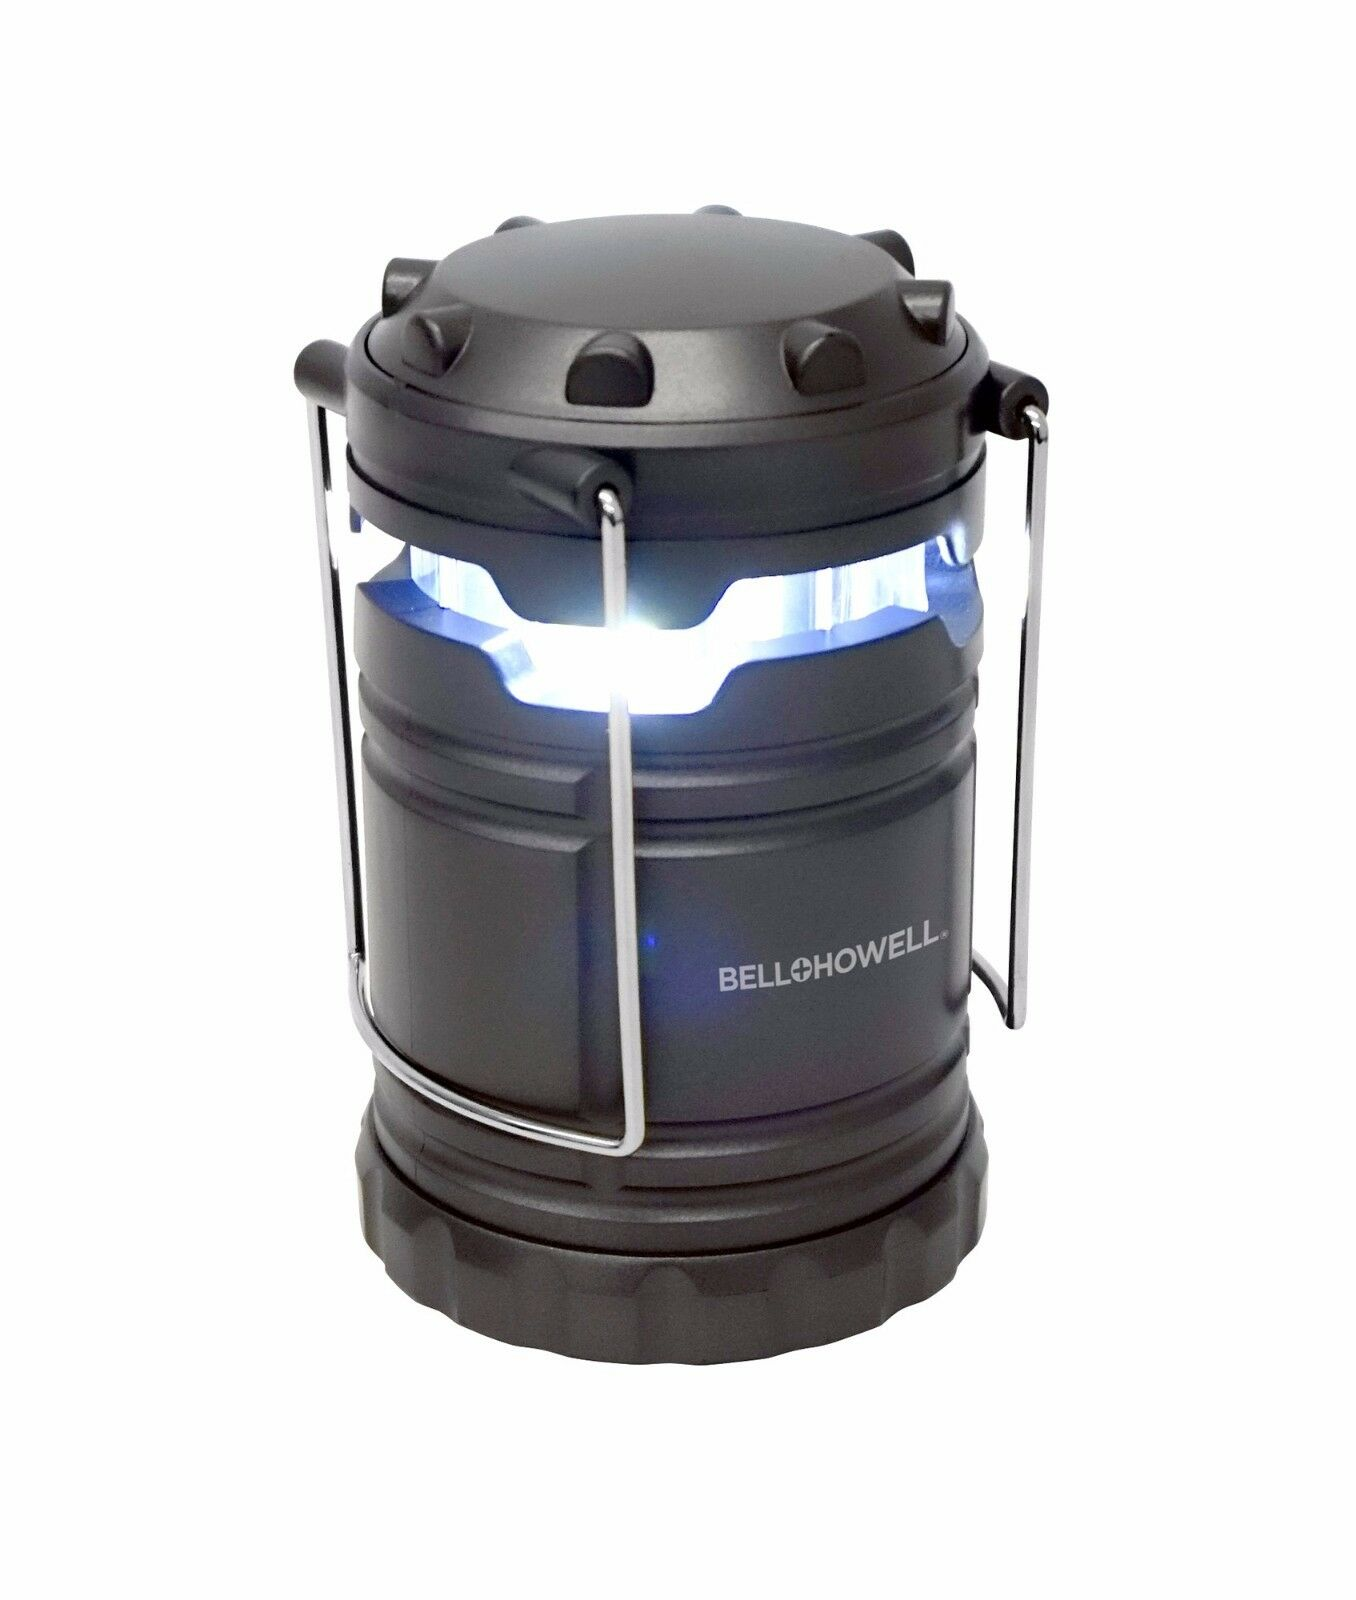 bell howell ultra bright portable outdoor led taclight